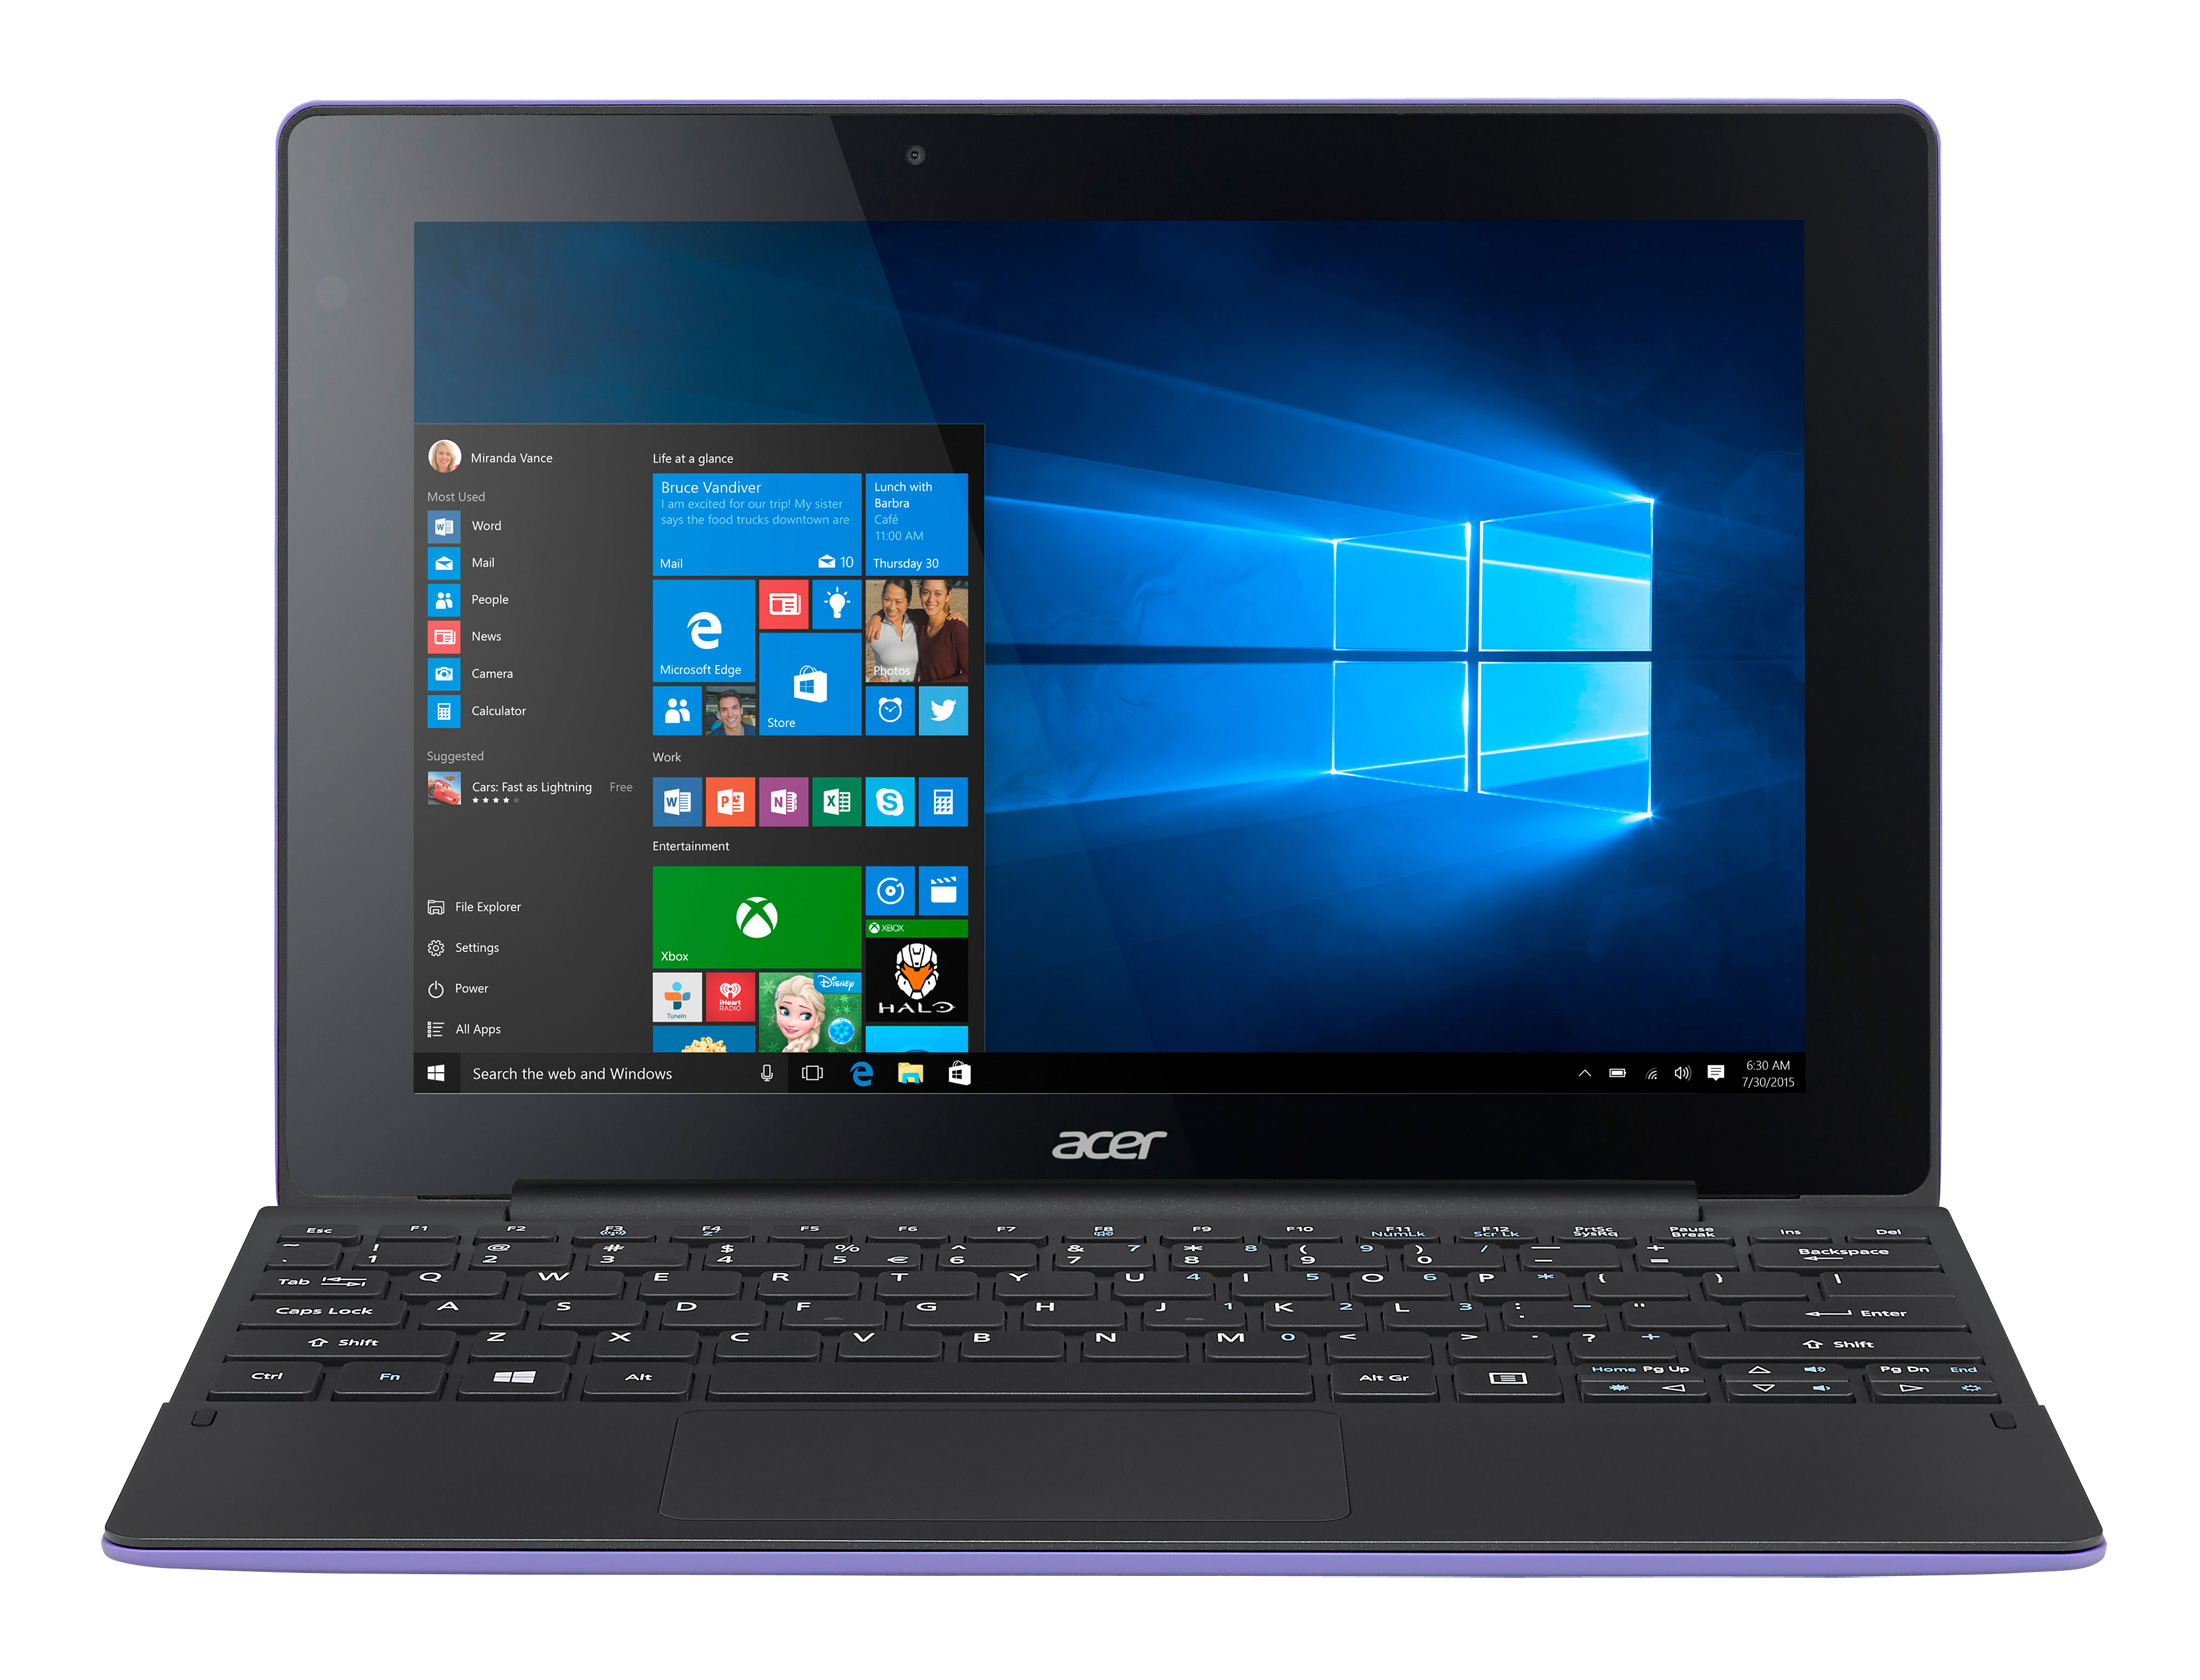 Acer Aspire Switch 10E SW301317UE 101 Touchscreen 2in1 Laptop Tablet